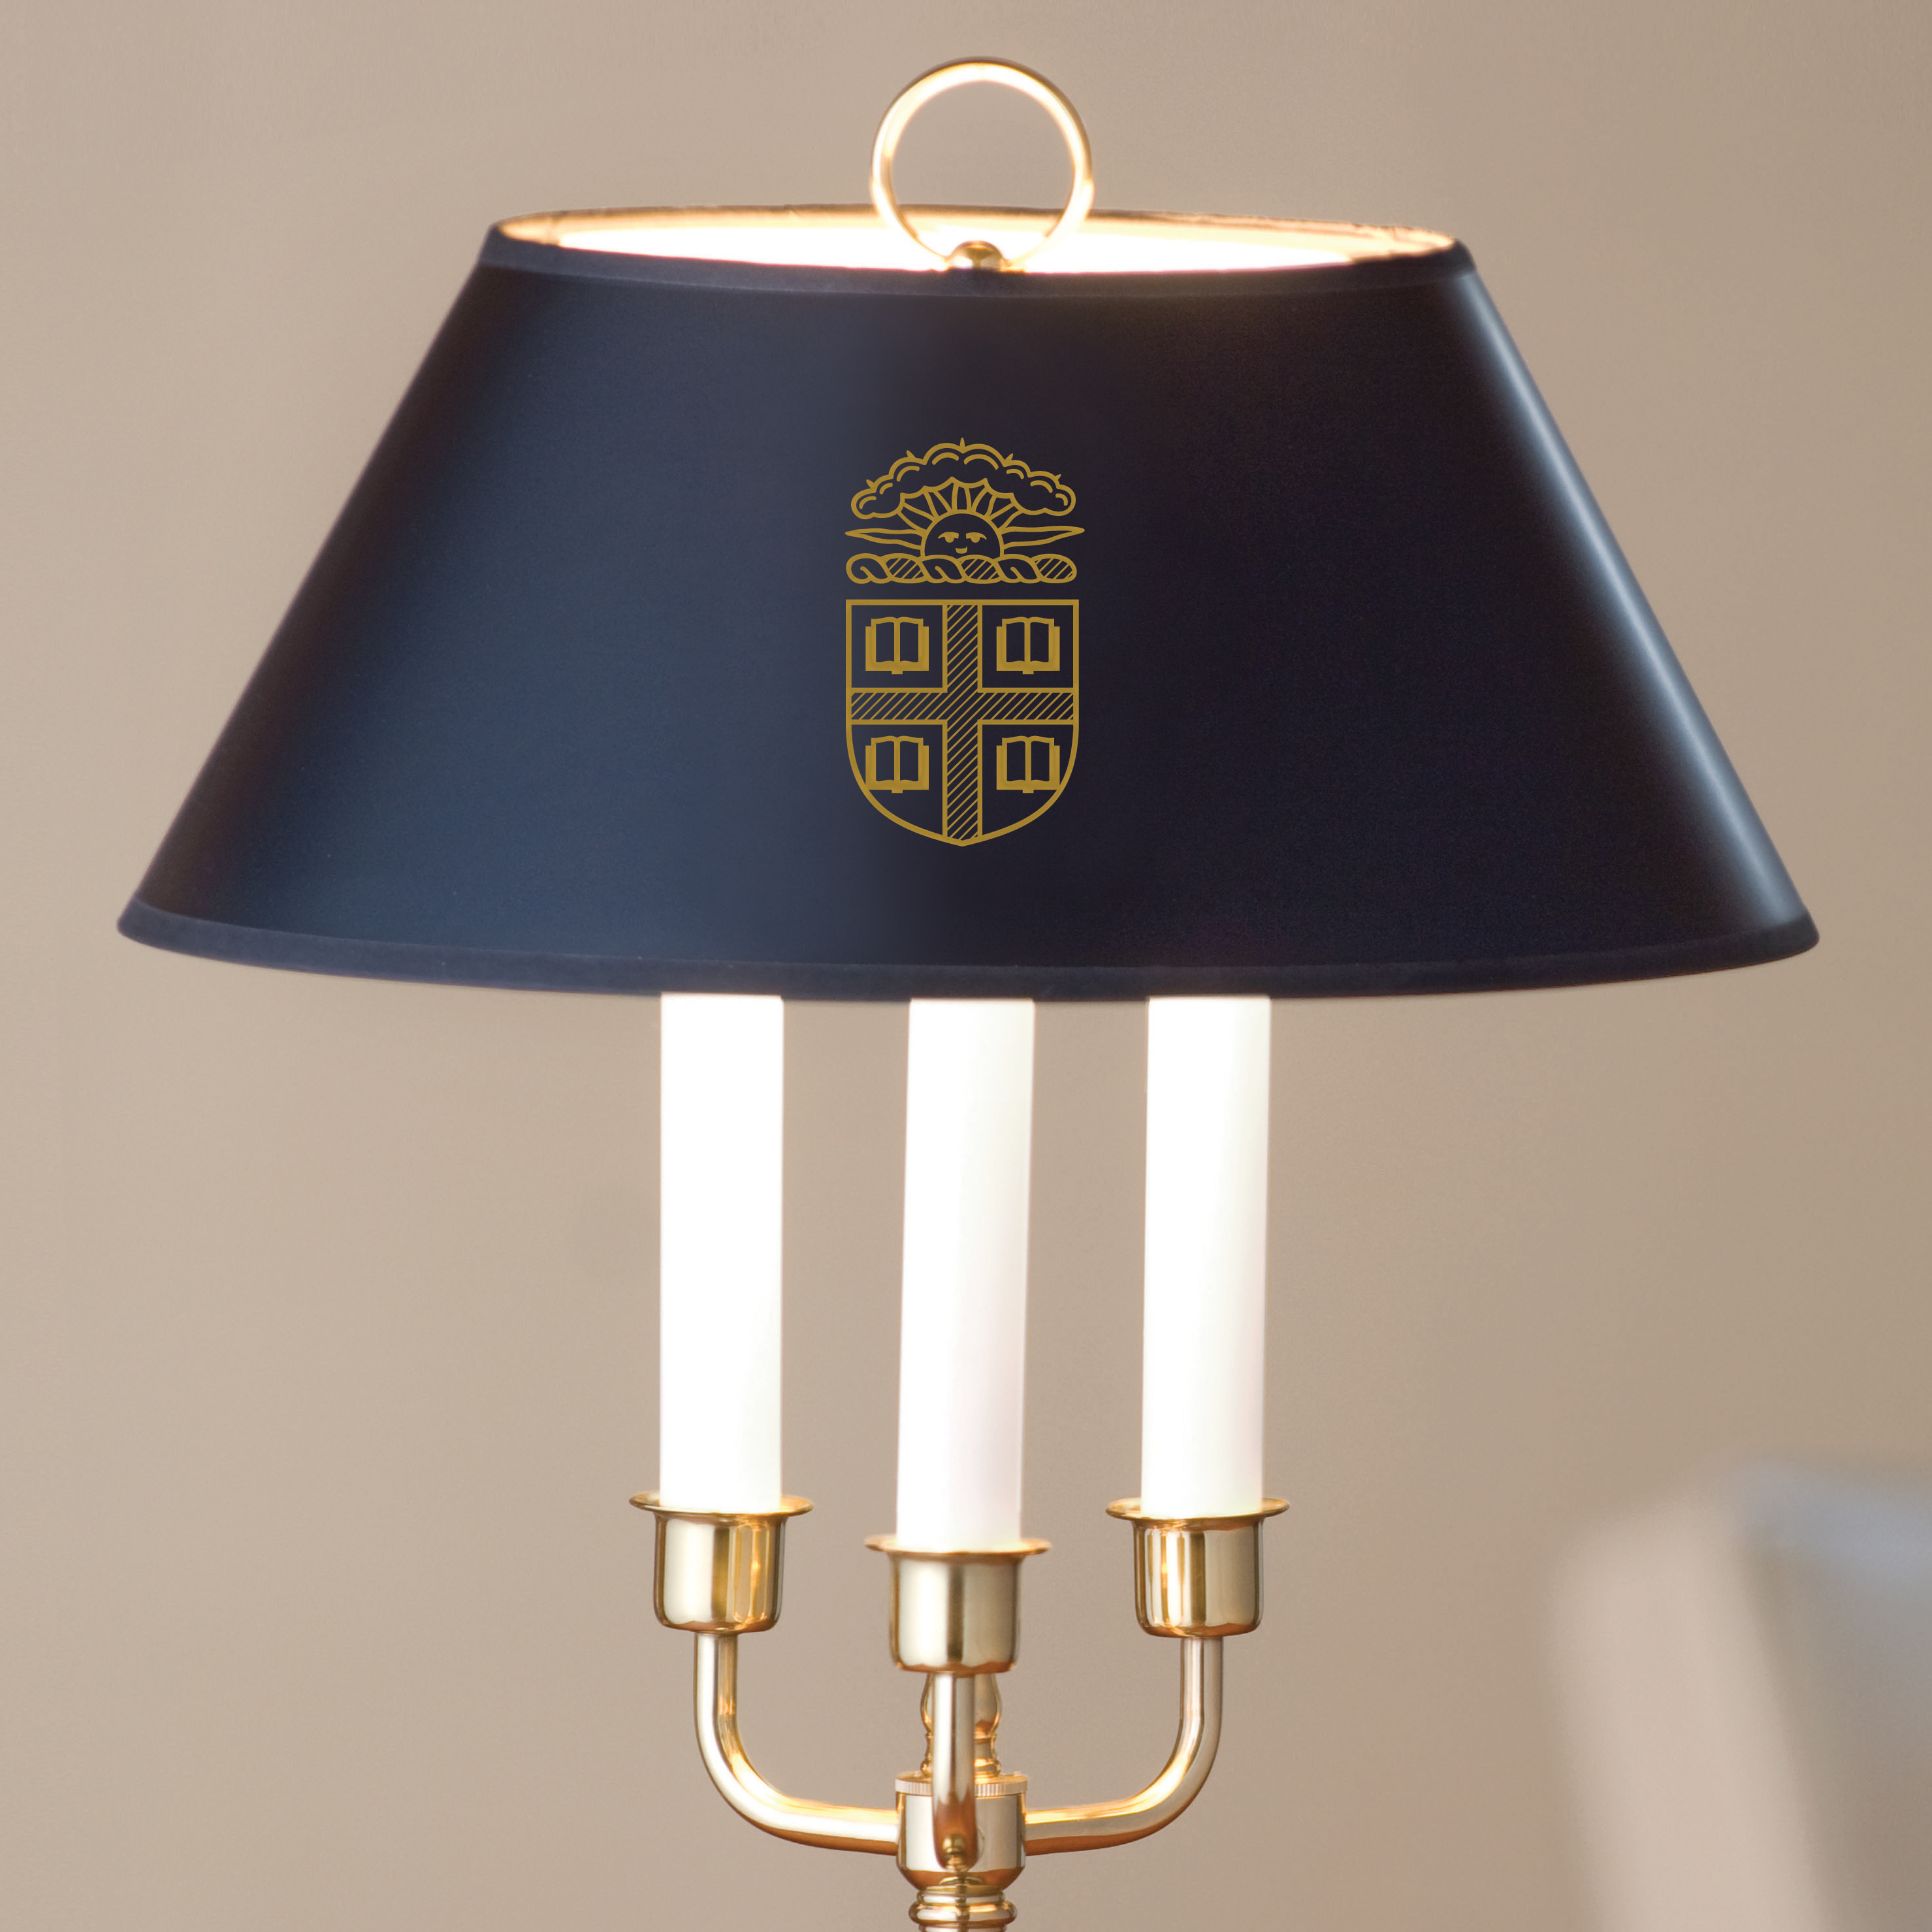 Brown University Lamp in Brass & Marble - Image 2